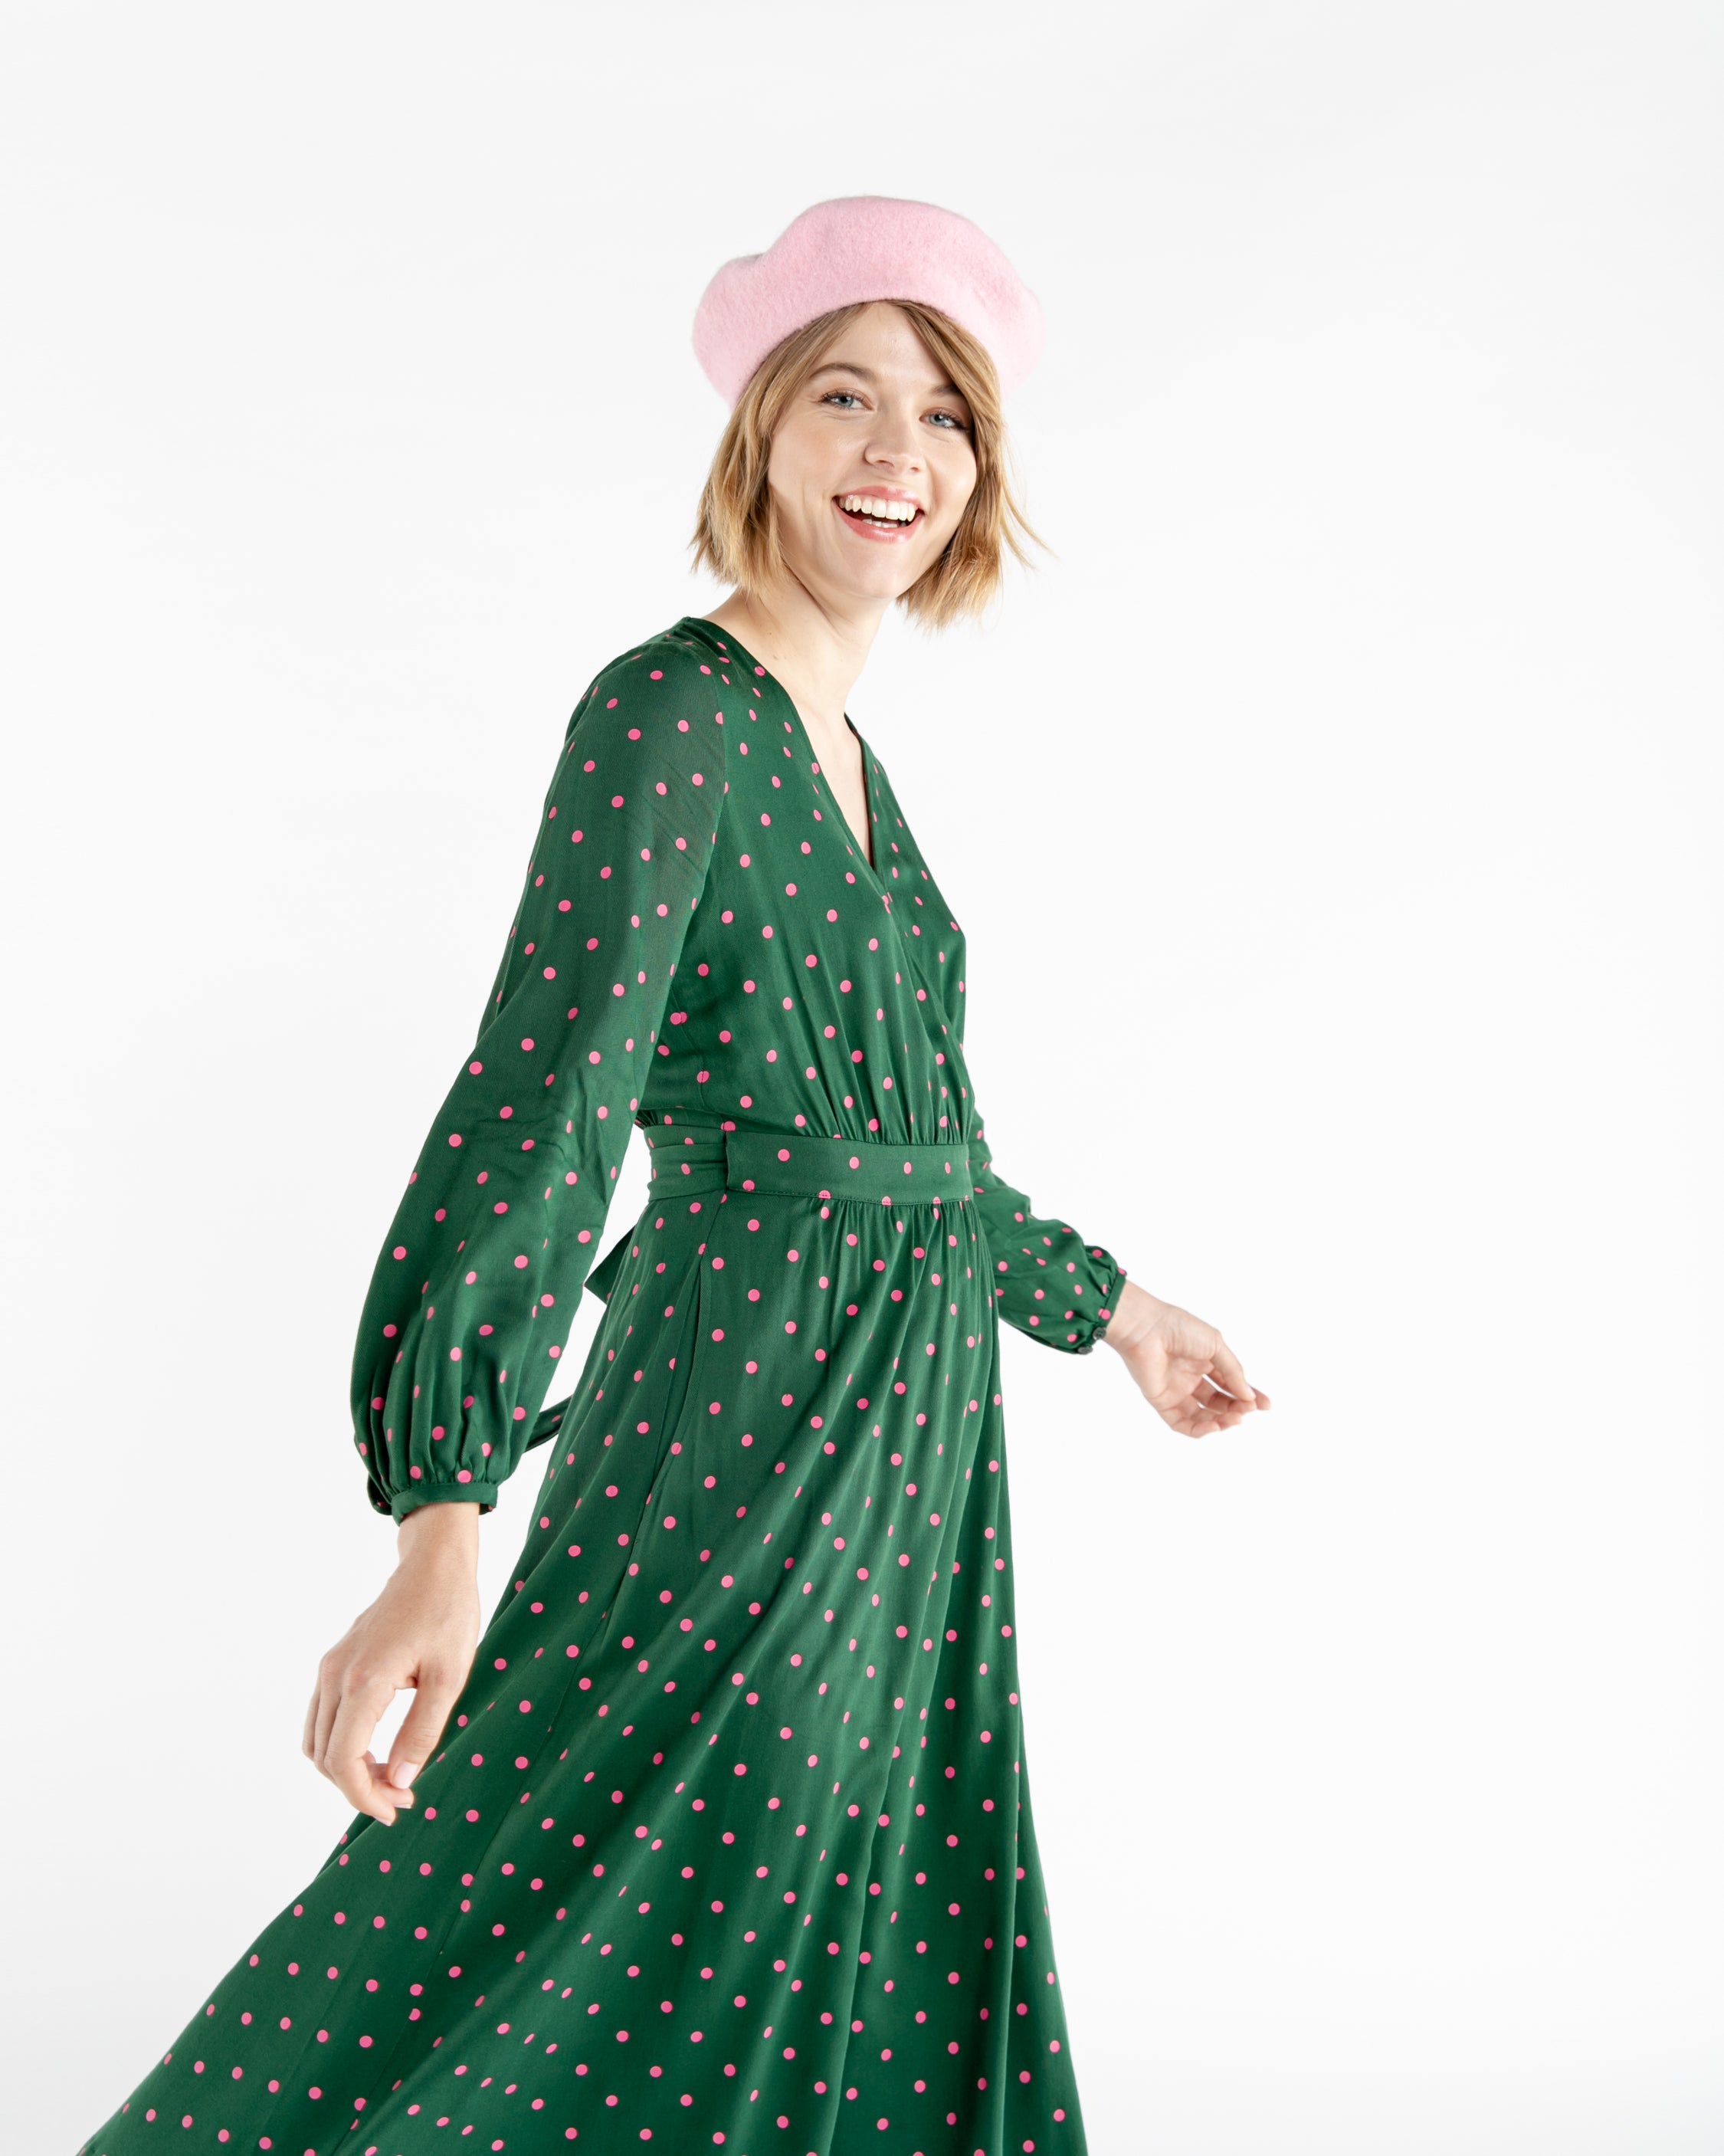 Size adjustable green polka dot wrap dress with a long tie belt.